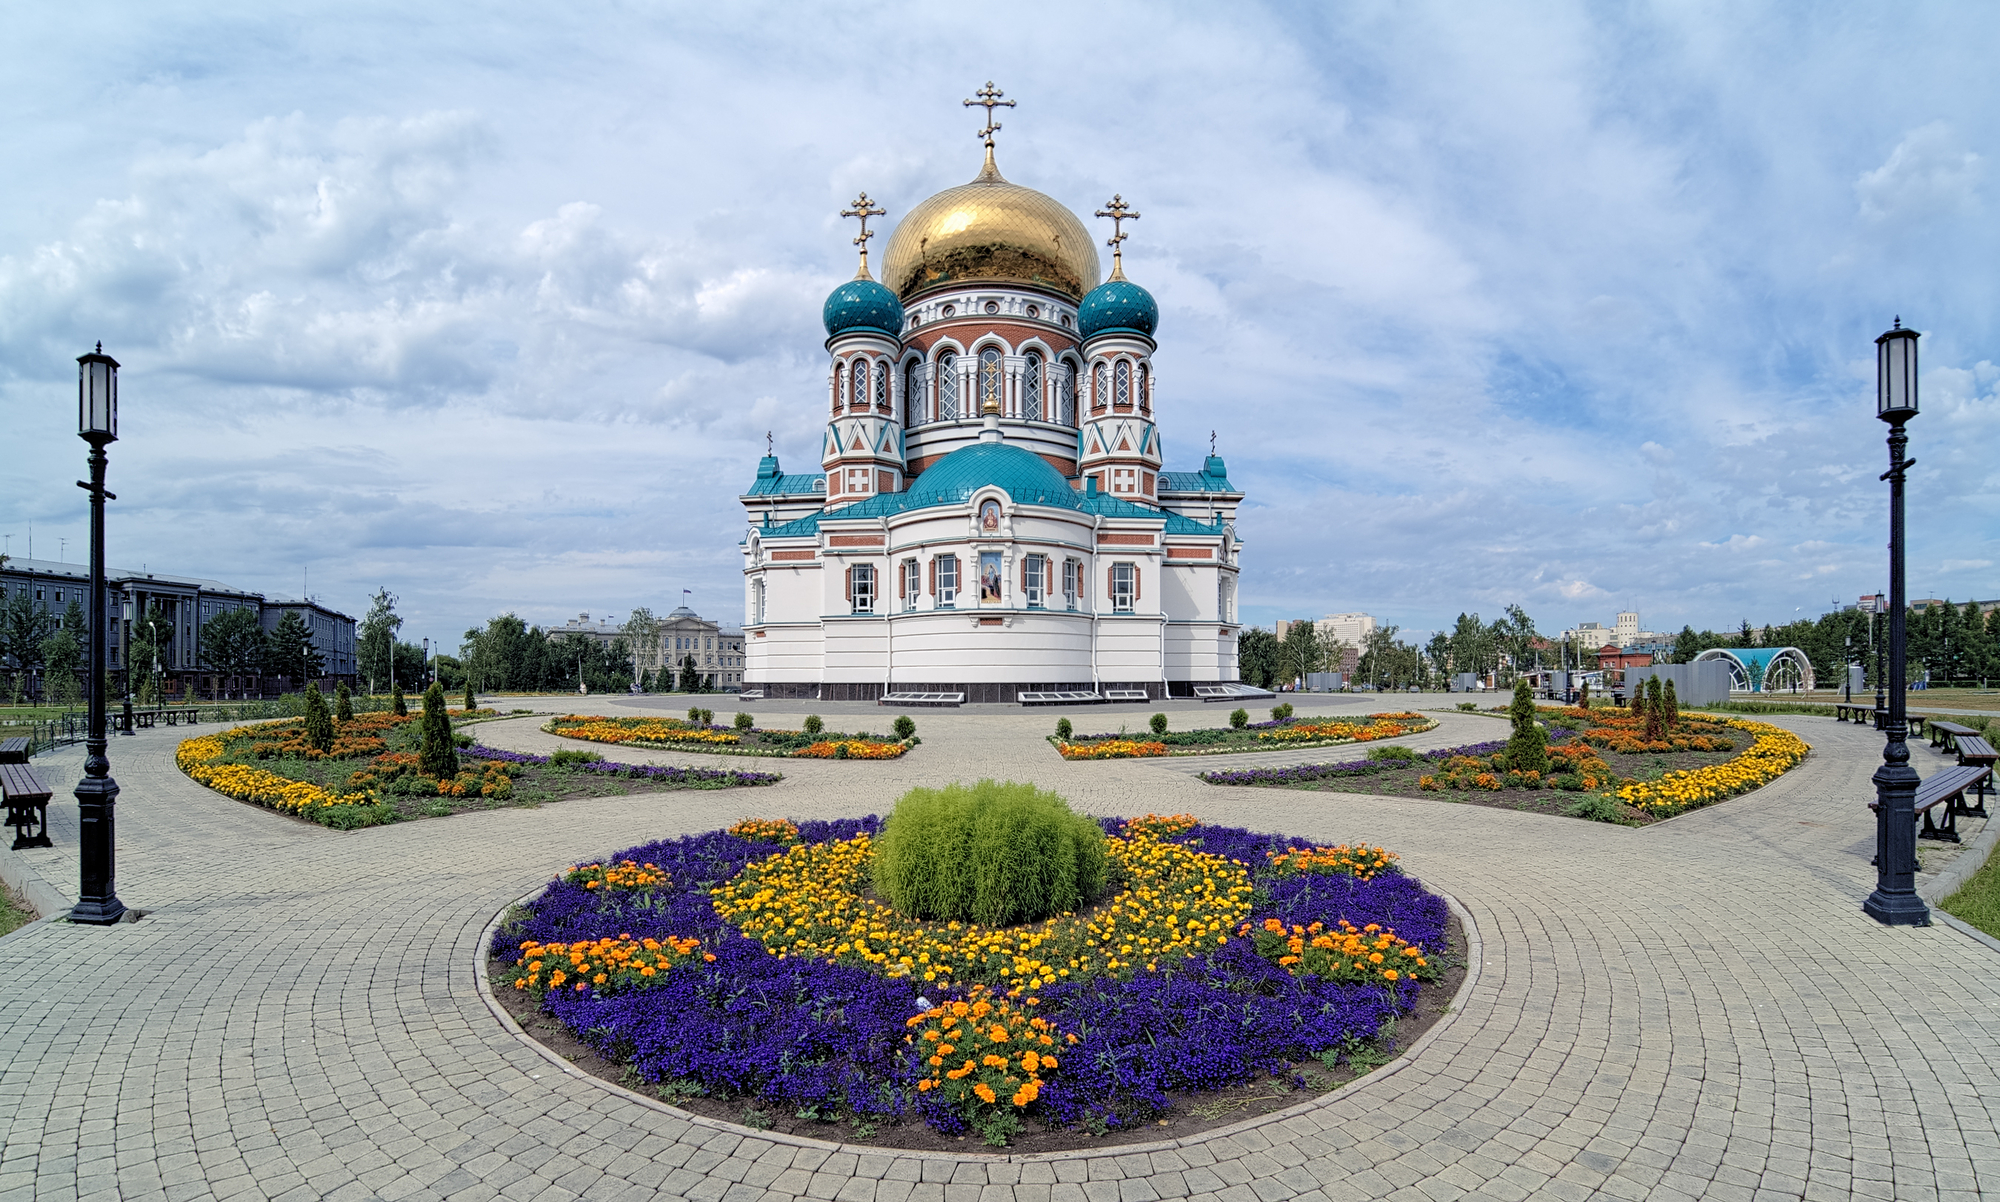 Uspensky Cathedral in Omsk, Russia